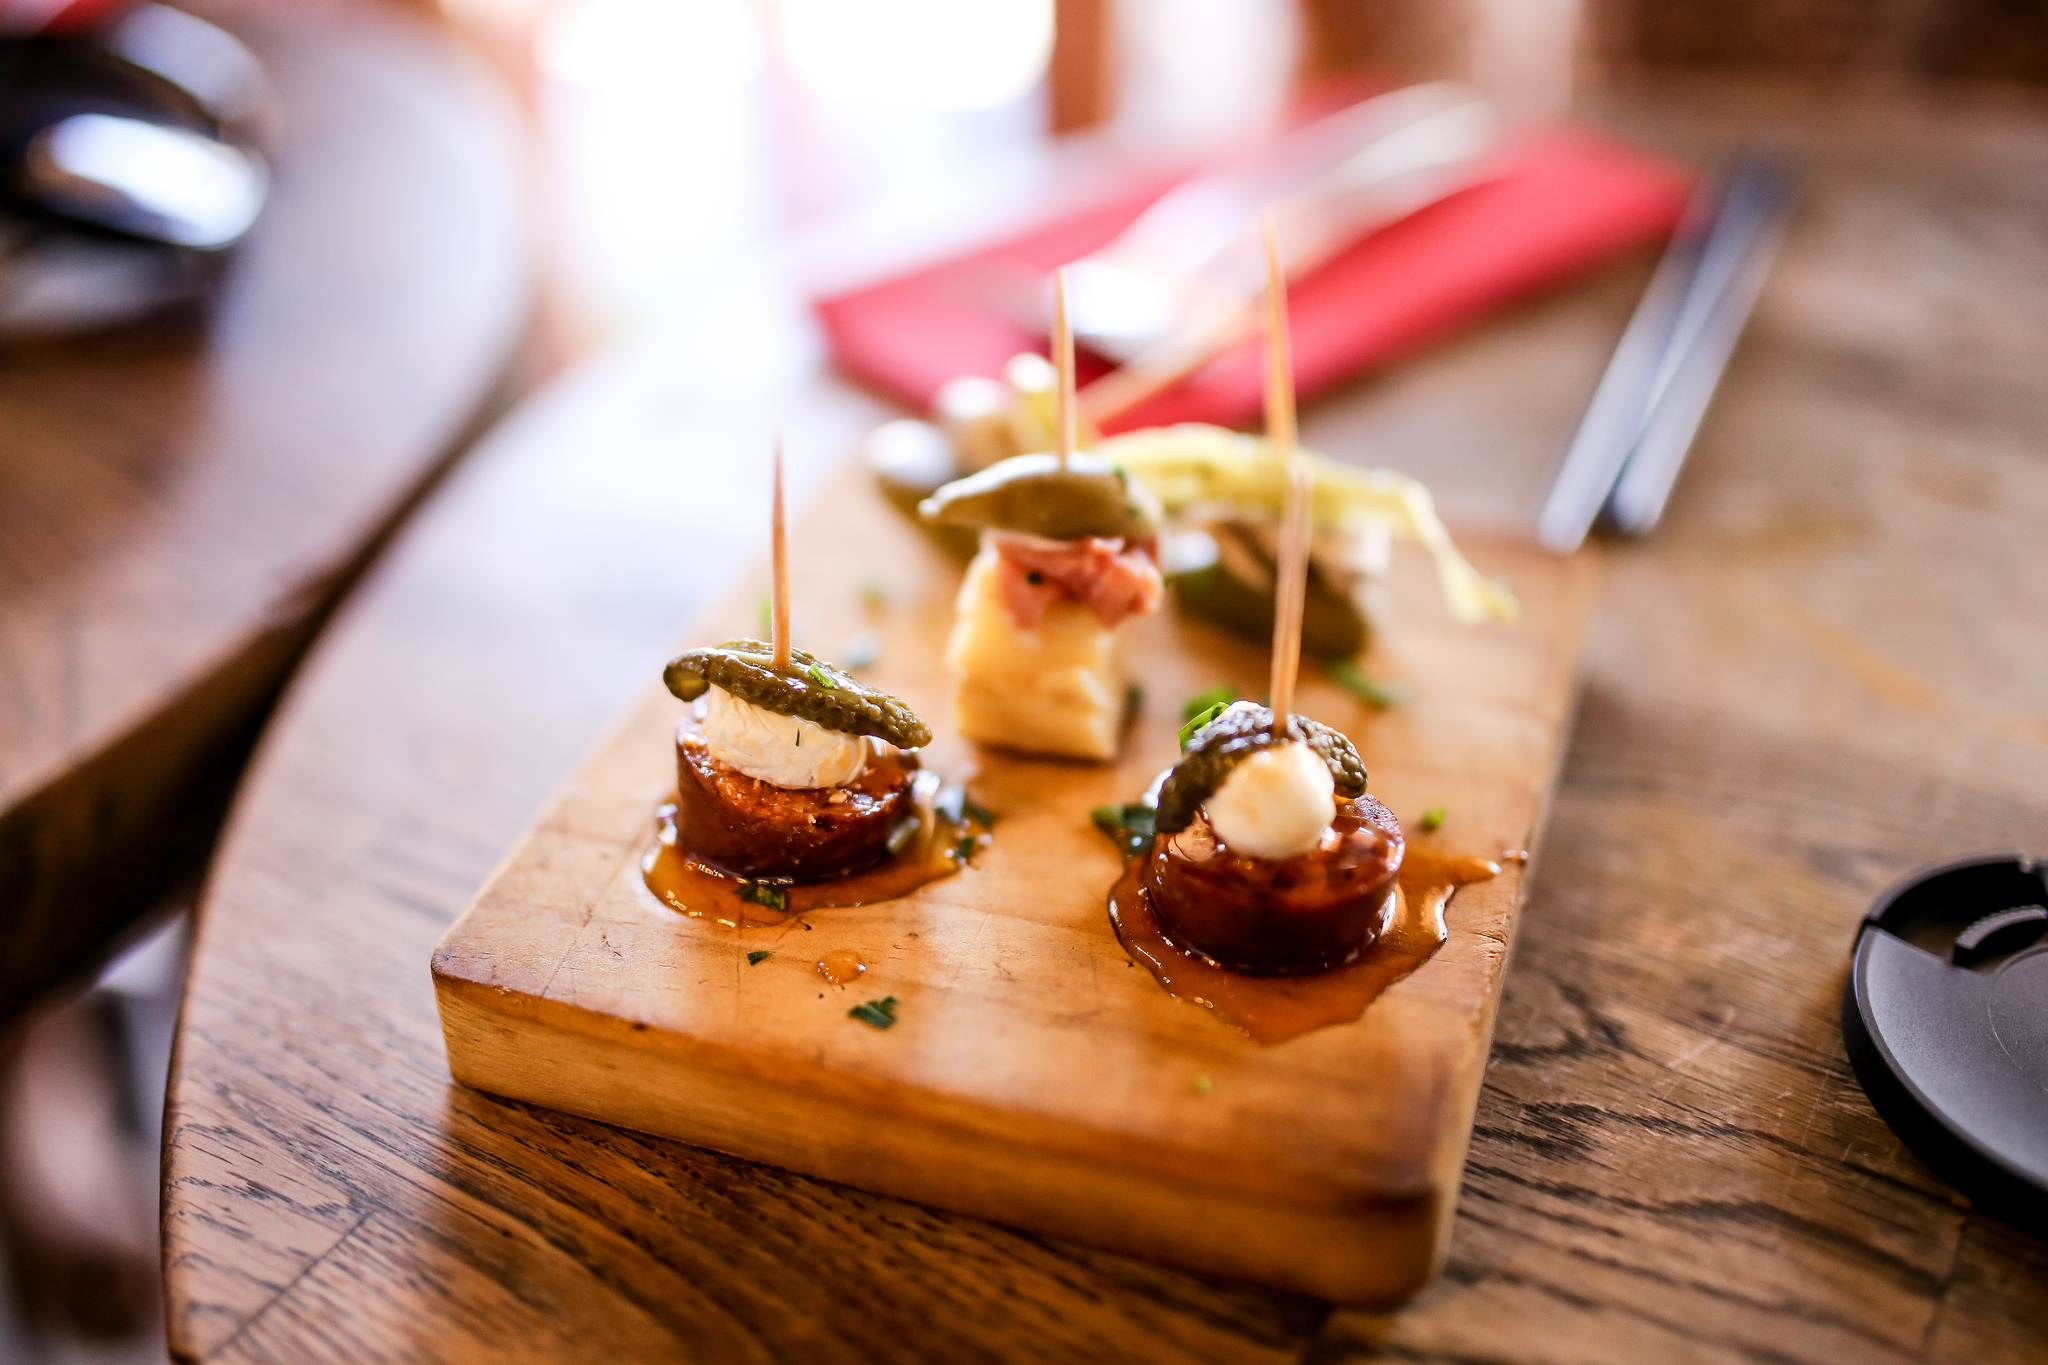 """Tapas!"" by Terence Lim via Flickr Creative Commons"